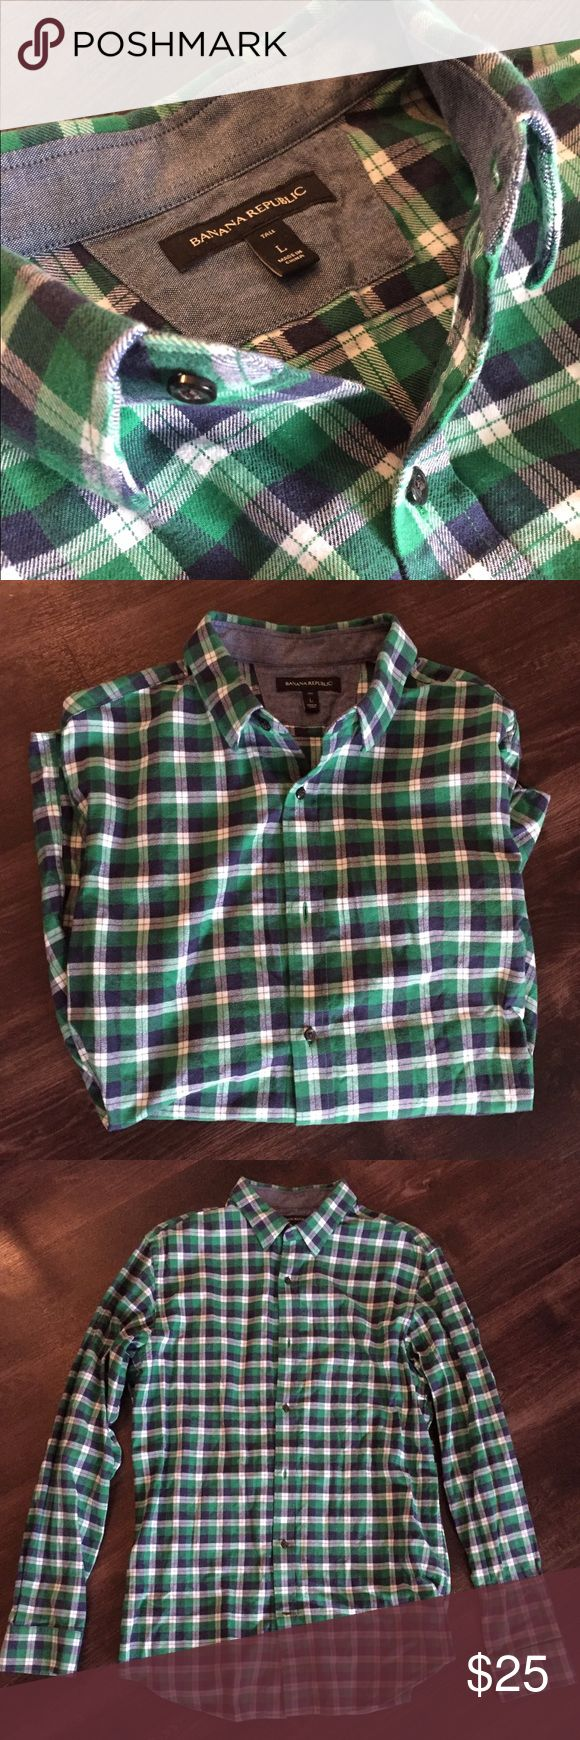 Men's Flannel Dress Shirt | Banana Republic L Extremely comfortable dress shirt for colder weather. Light flannel material, not too hot. Green, navy, white checkered pattern. Banana Republic Shirts Dress Shirts